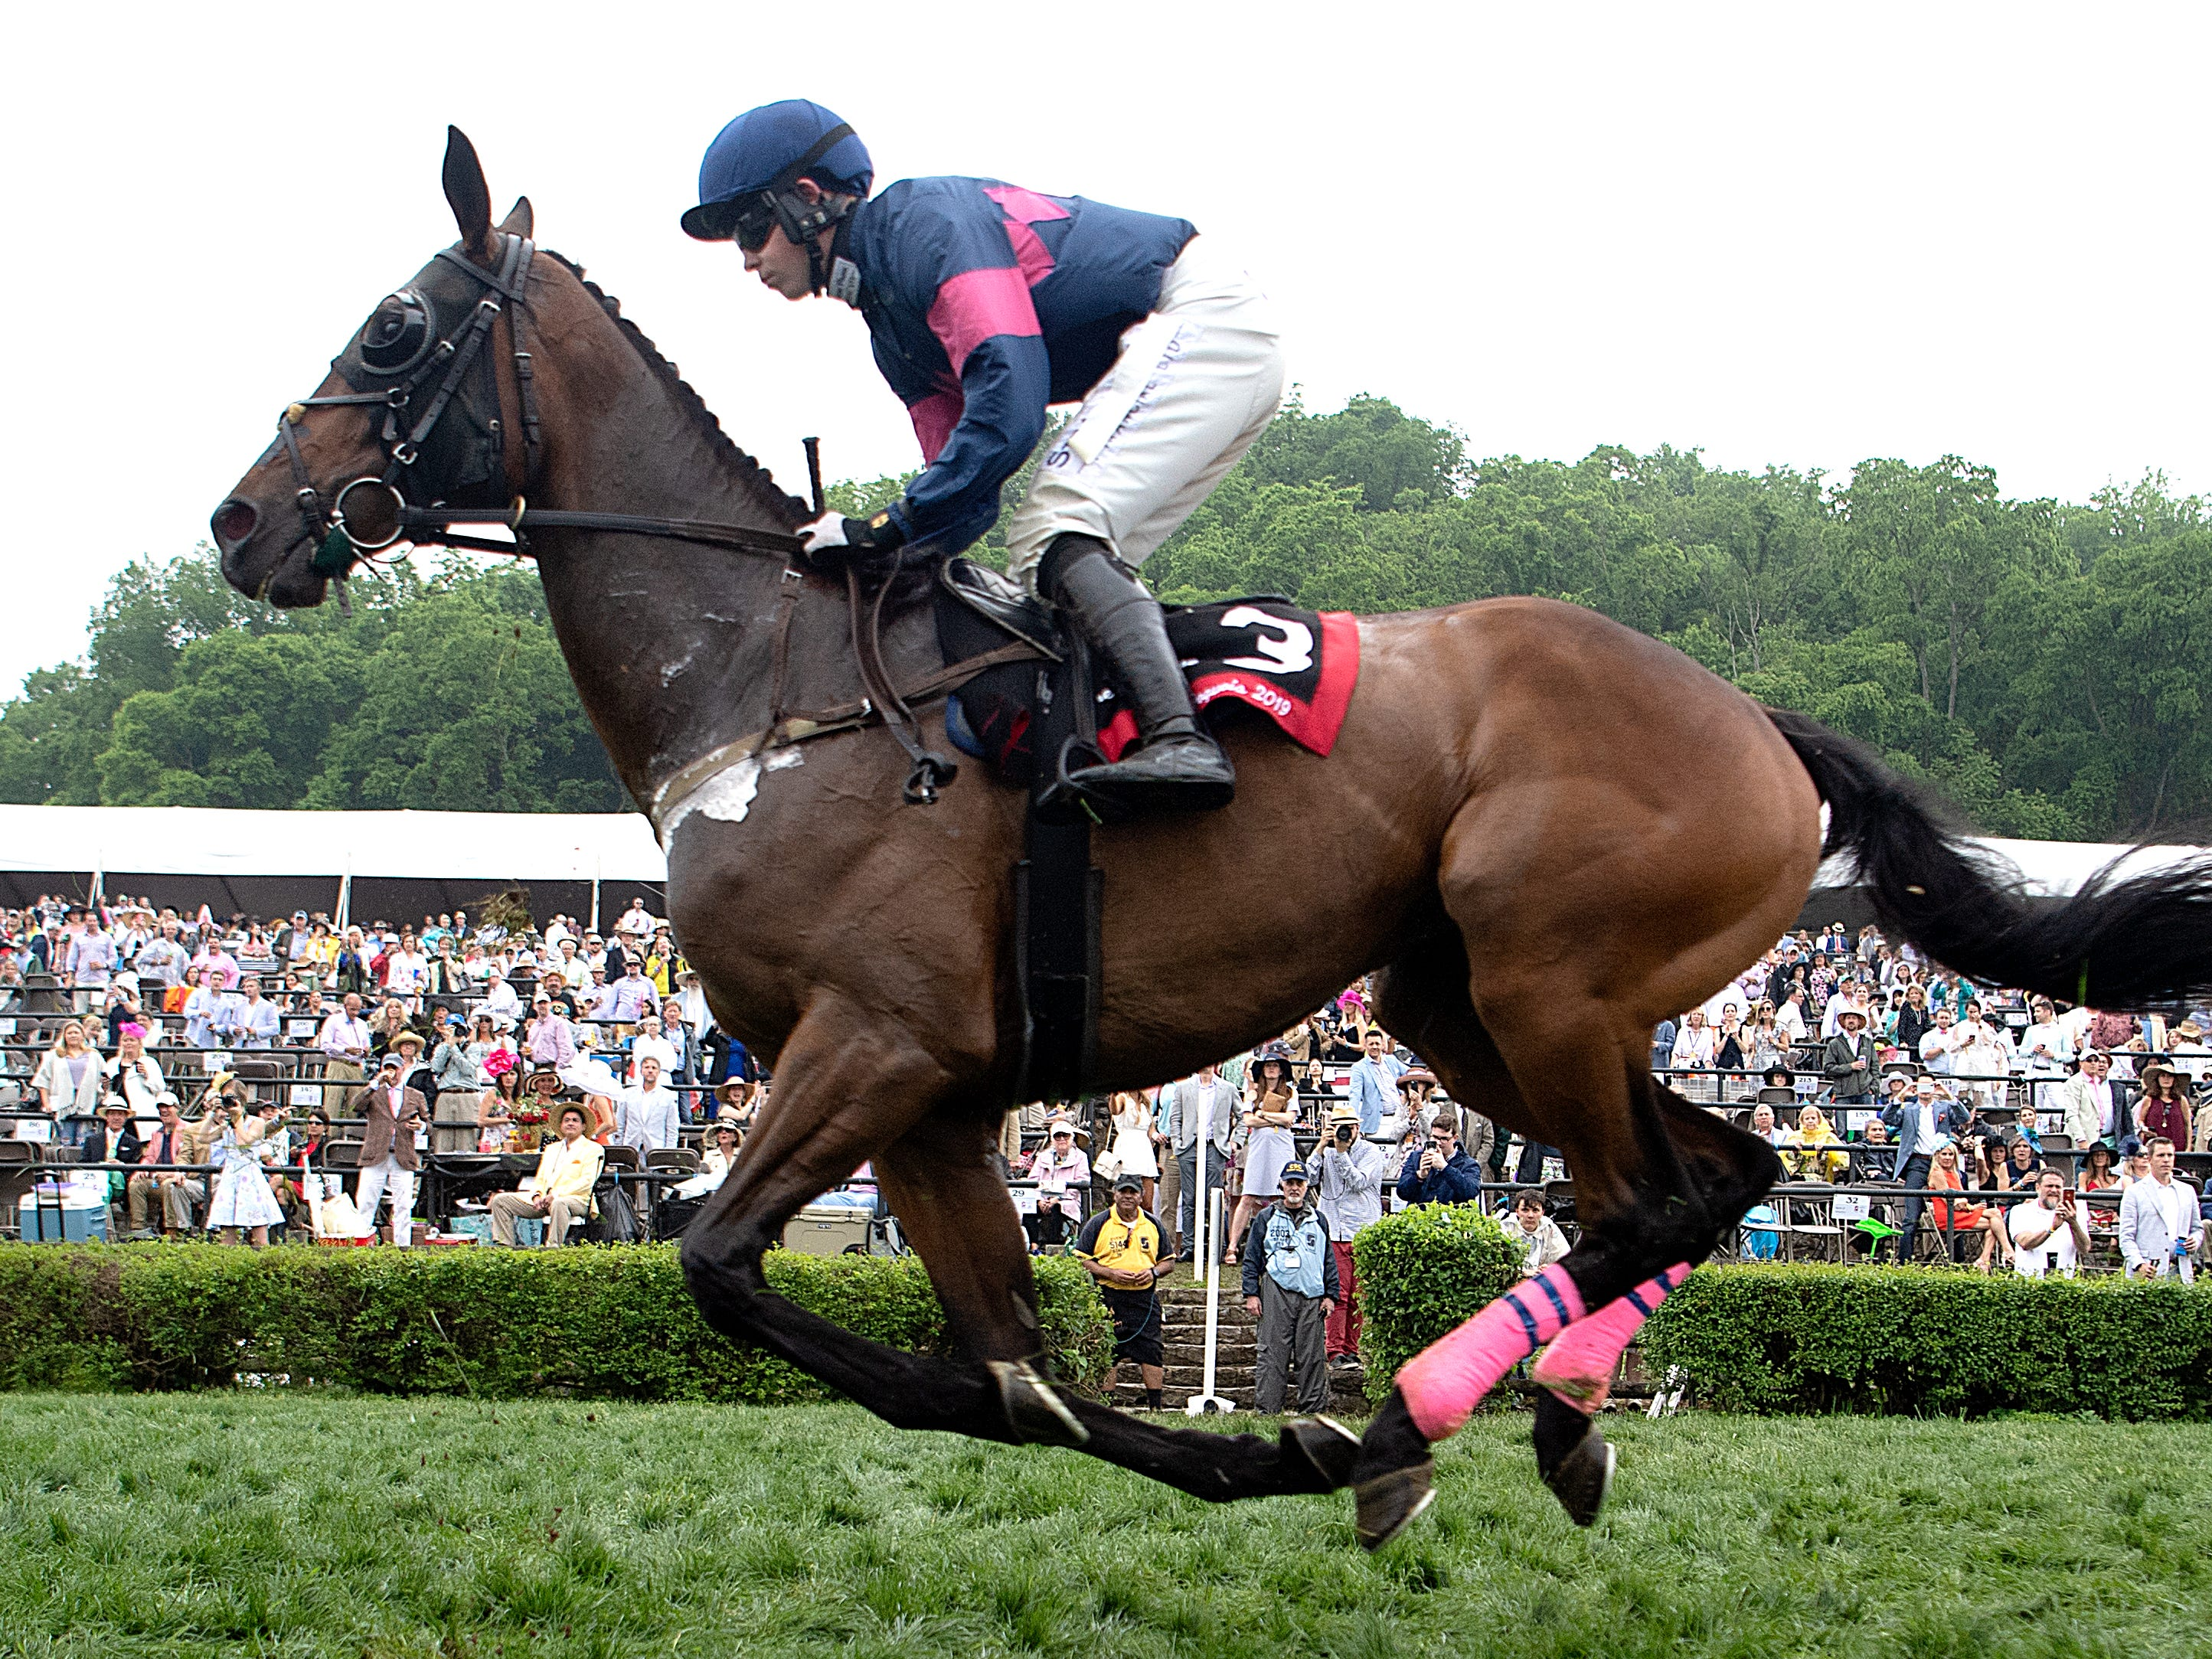 A horse races in the last race at the 78th Iroquois Steeplechase at Percy Warner Park in Nashville on Saturday, May 11, 2019.